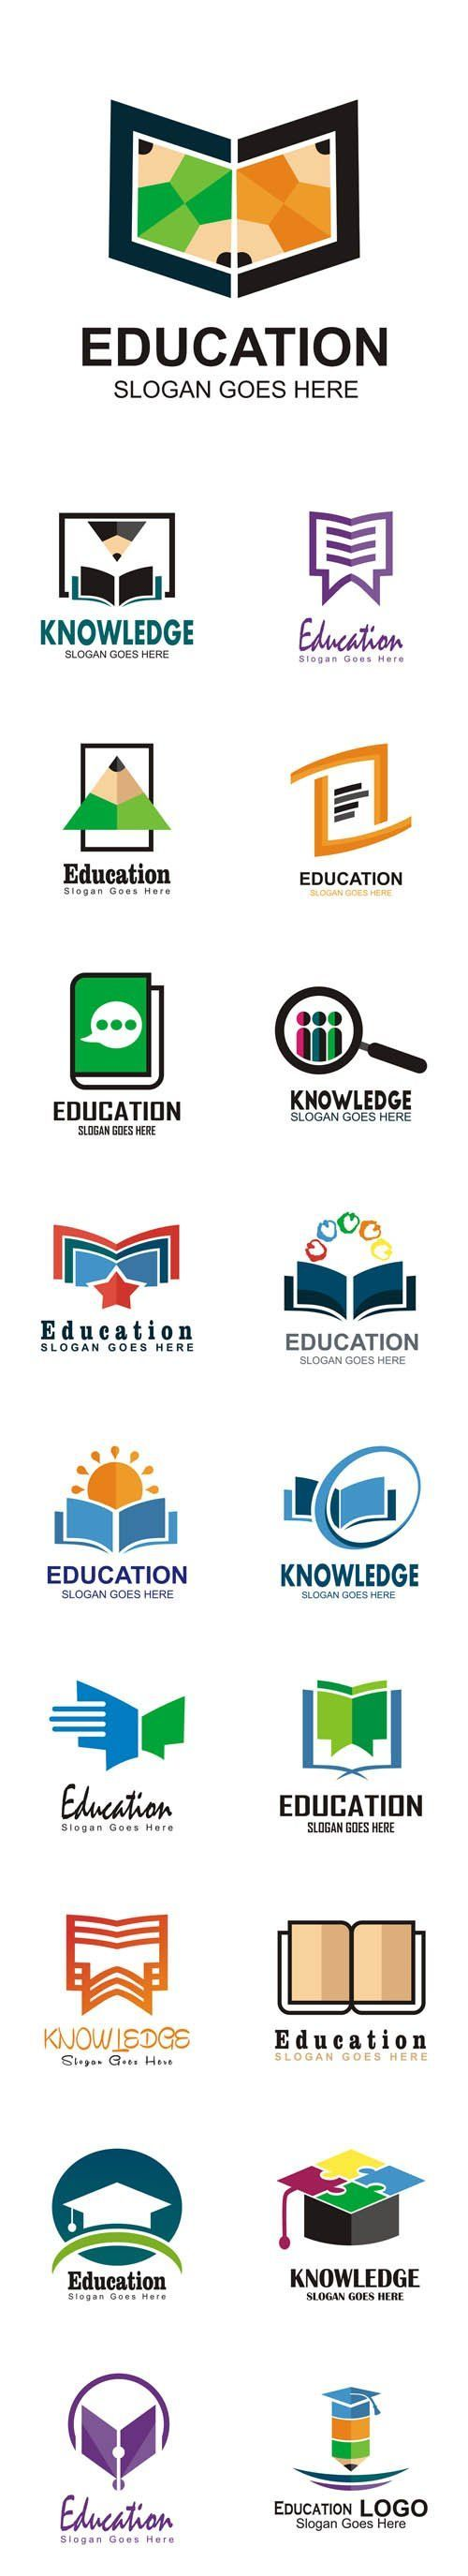 Vector Education Logos Study Symbol Graduation Icon